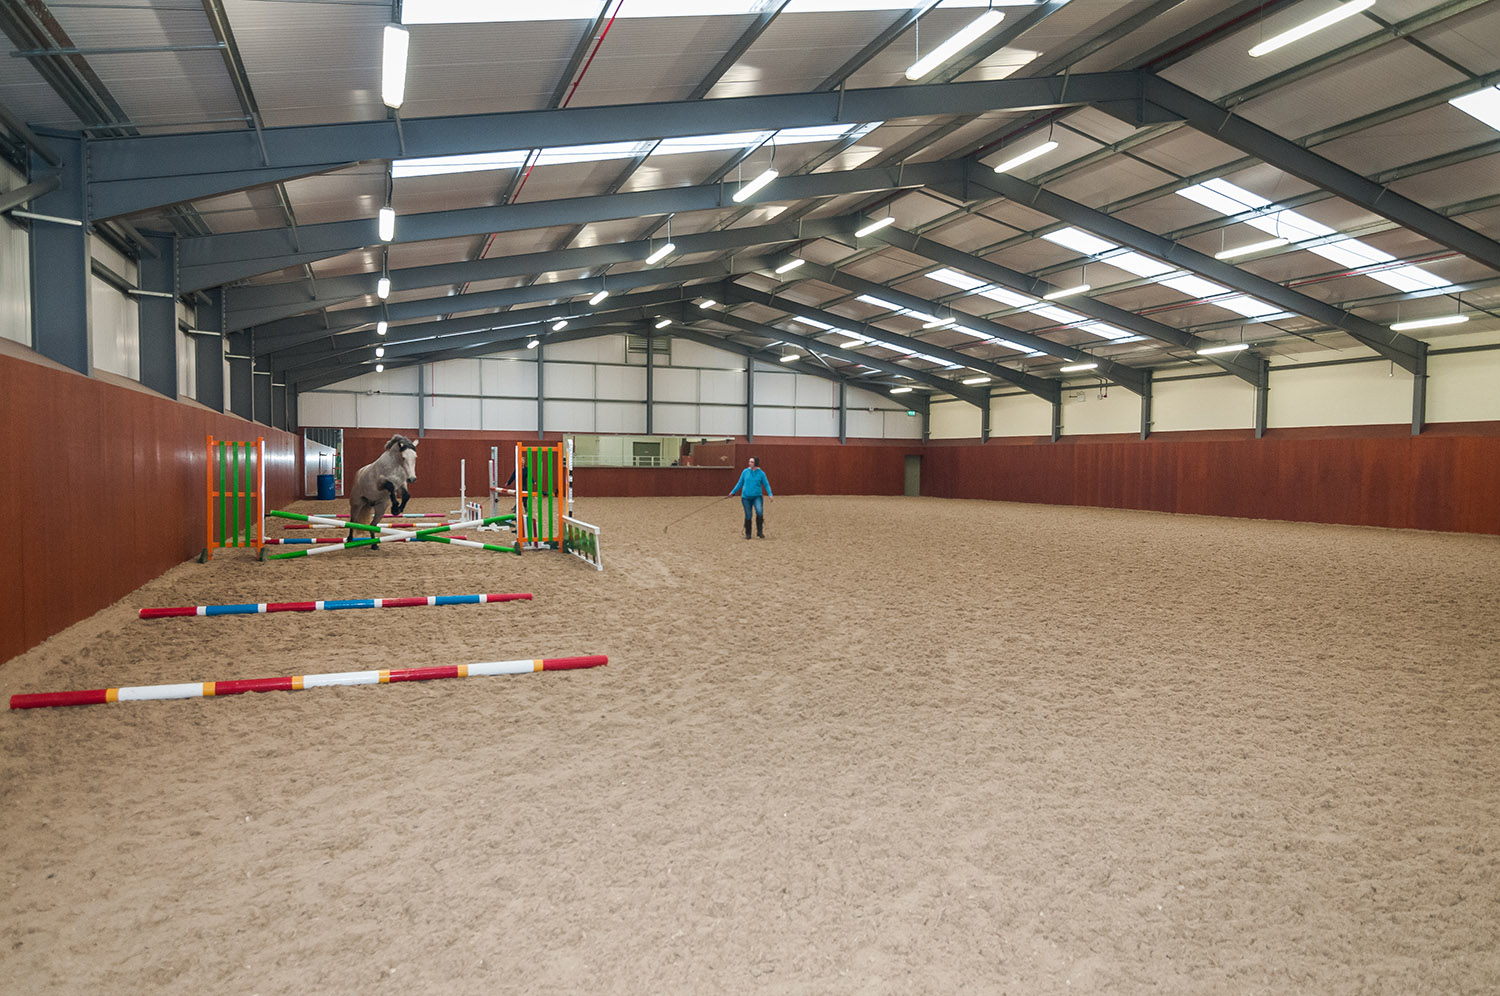 Thompson house equestrian centre wcp associates for The thompson house